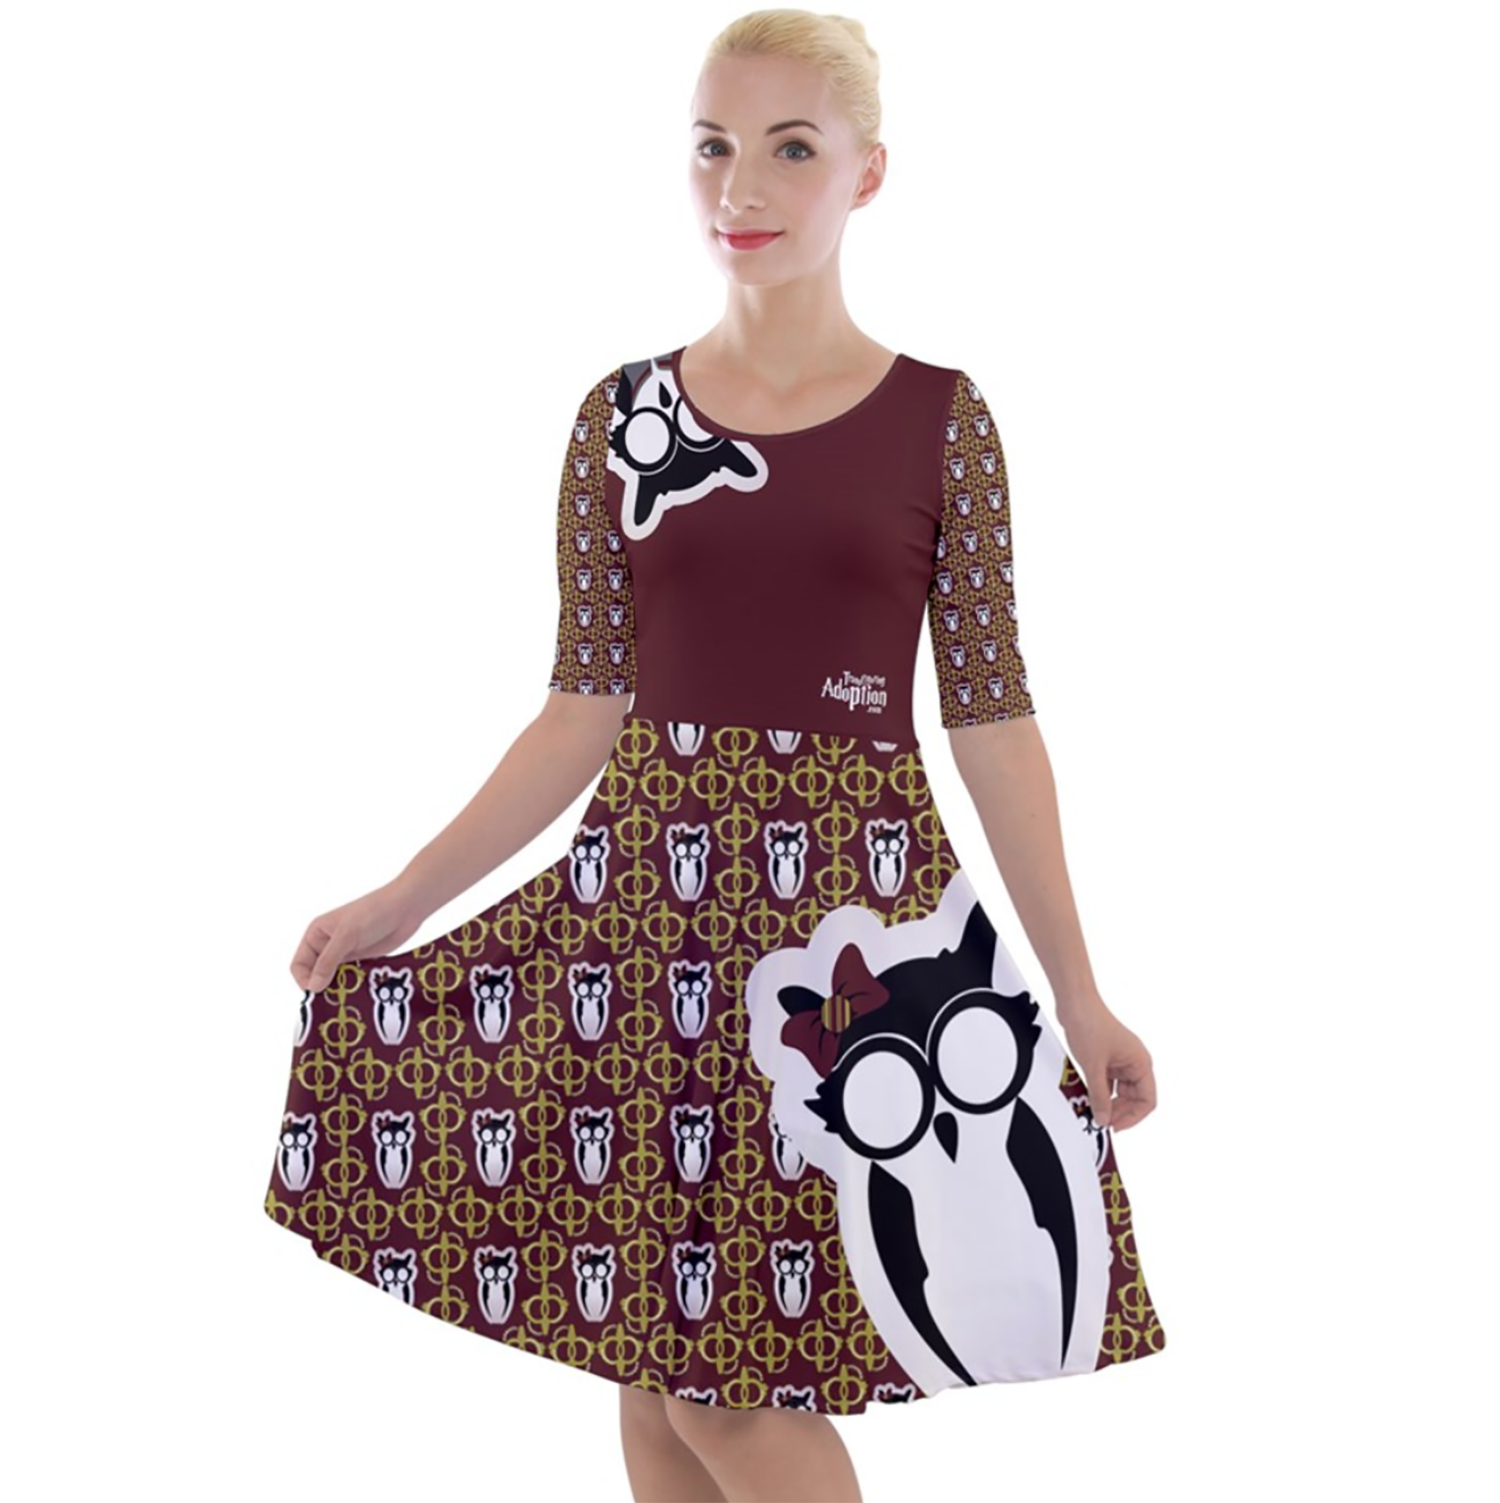 Owl (Red) Pattern Dress - Quarter Sleeve A-Line Dress - Inspired by Gryffindor